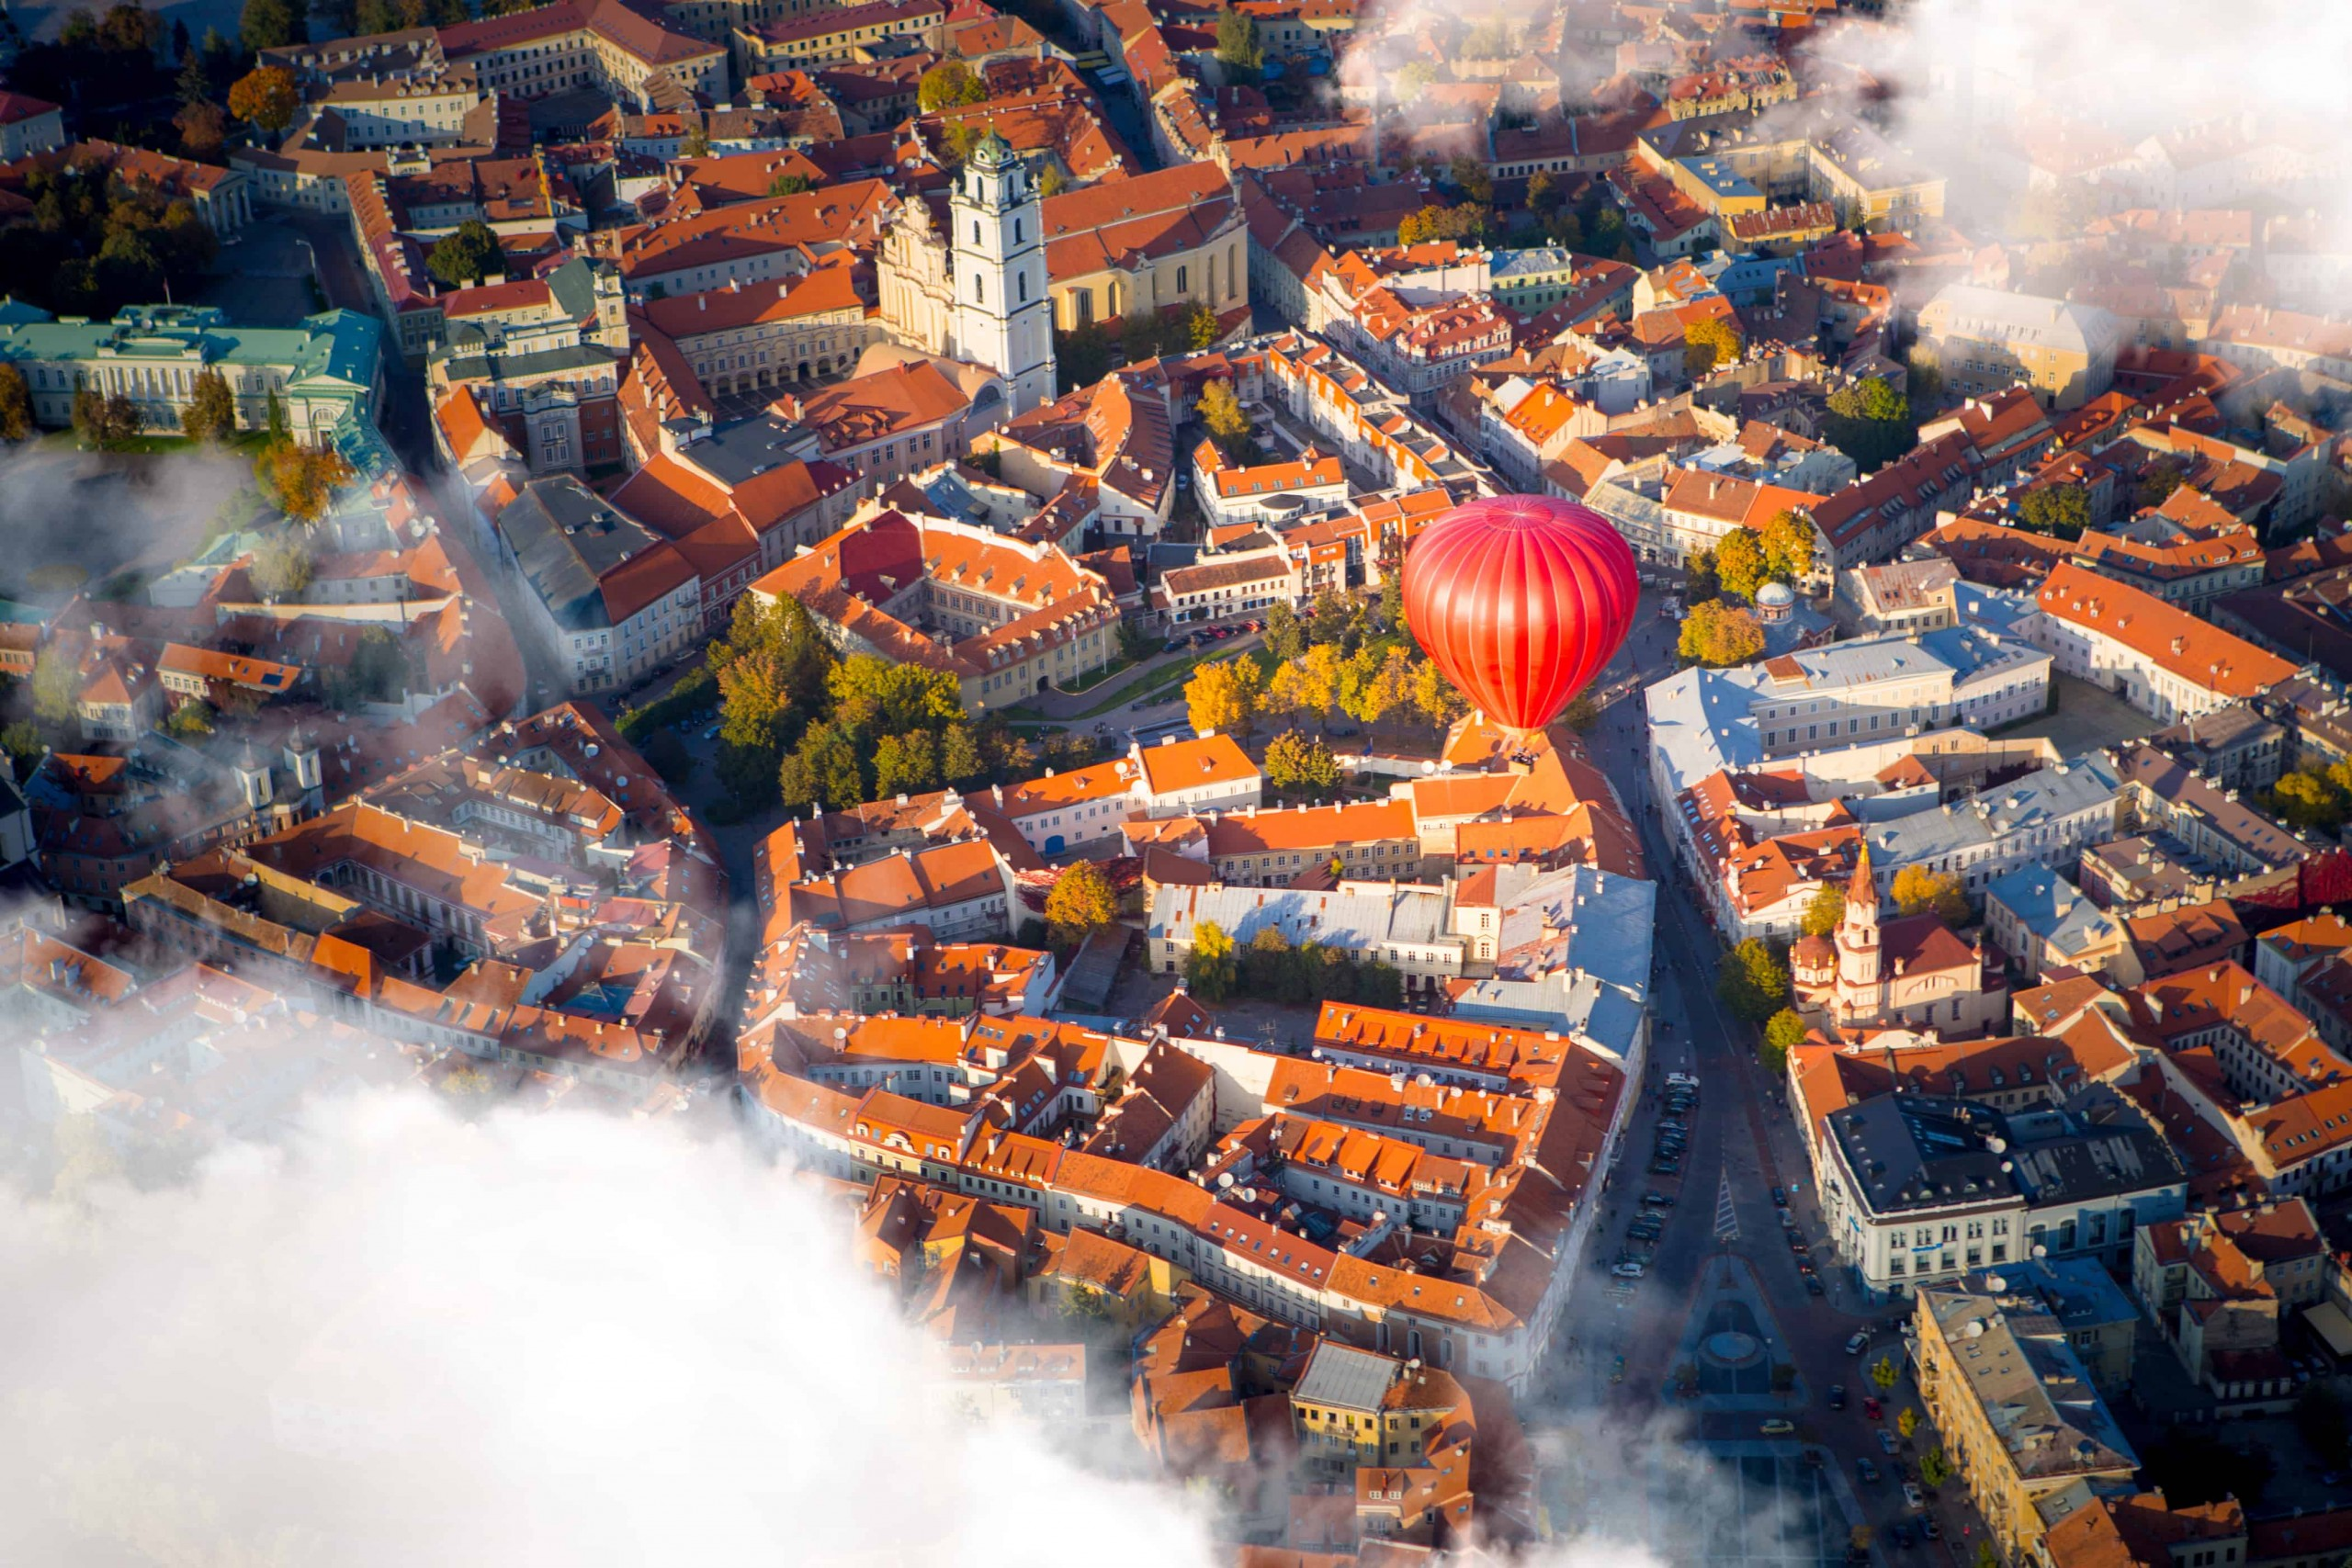 Image of hot air balloon in Vilnius